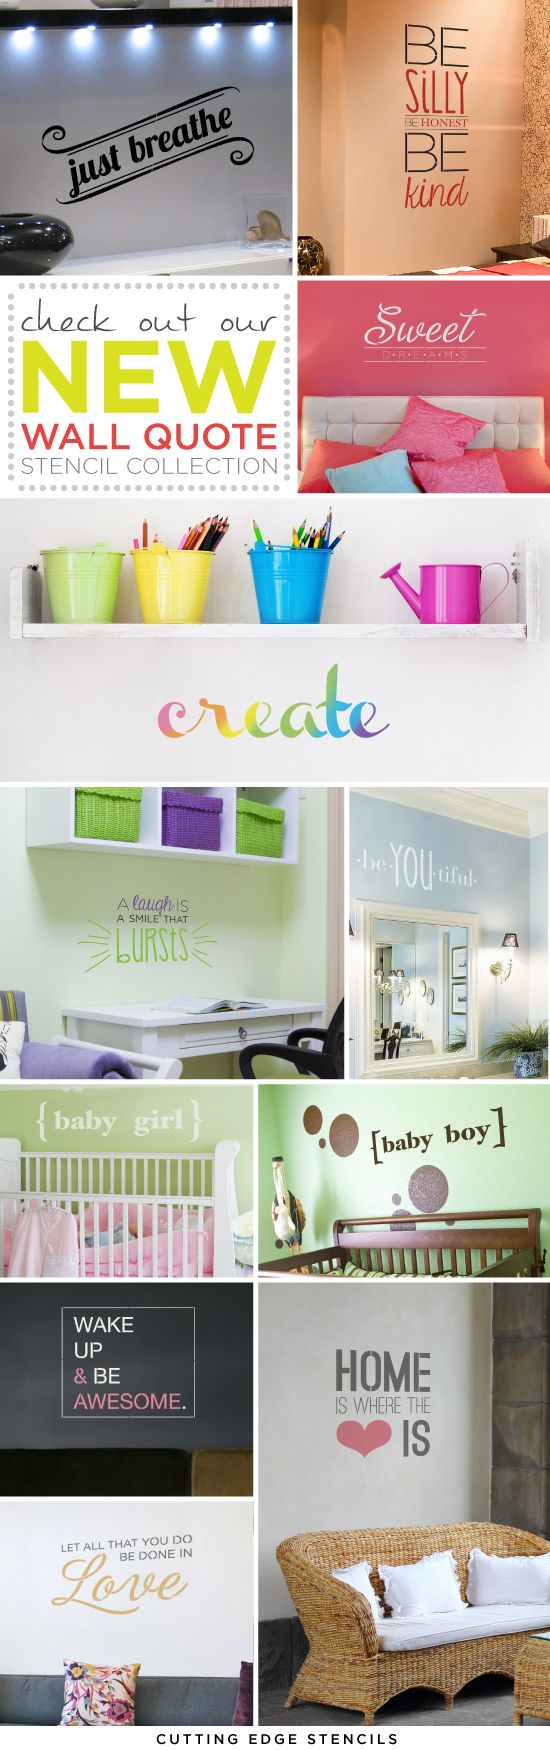 Stencil with a Wall Quote from Cutting Edge Stencils to personalize your space and make a statement! http://www.cuttingedgestencils.com/wall-quotes-stencils-quotes-for-walls.html